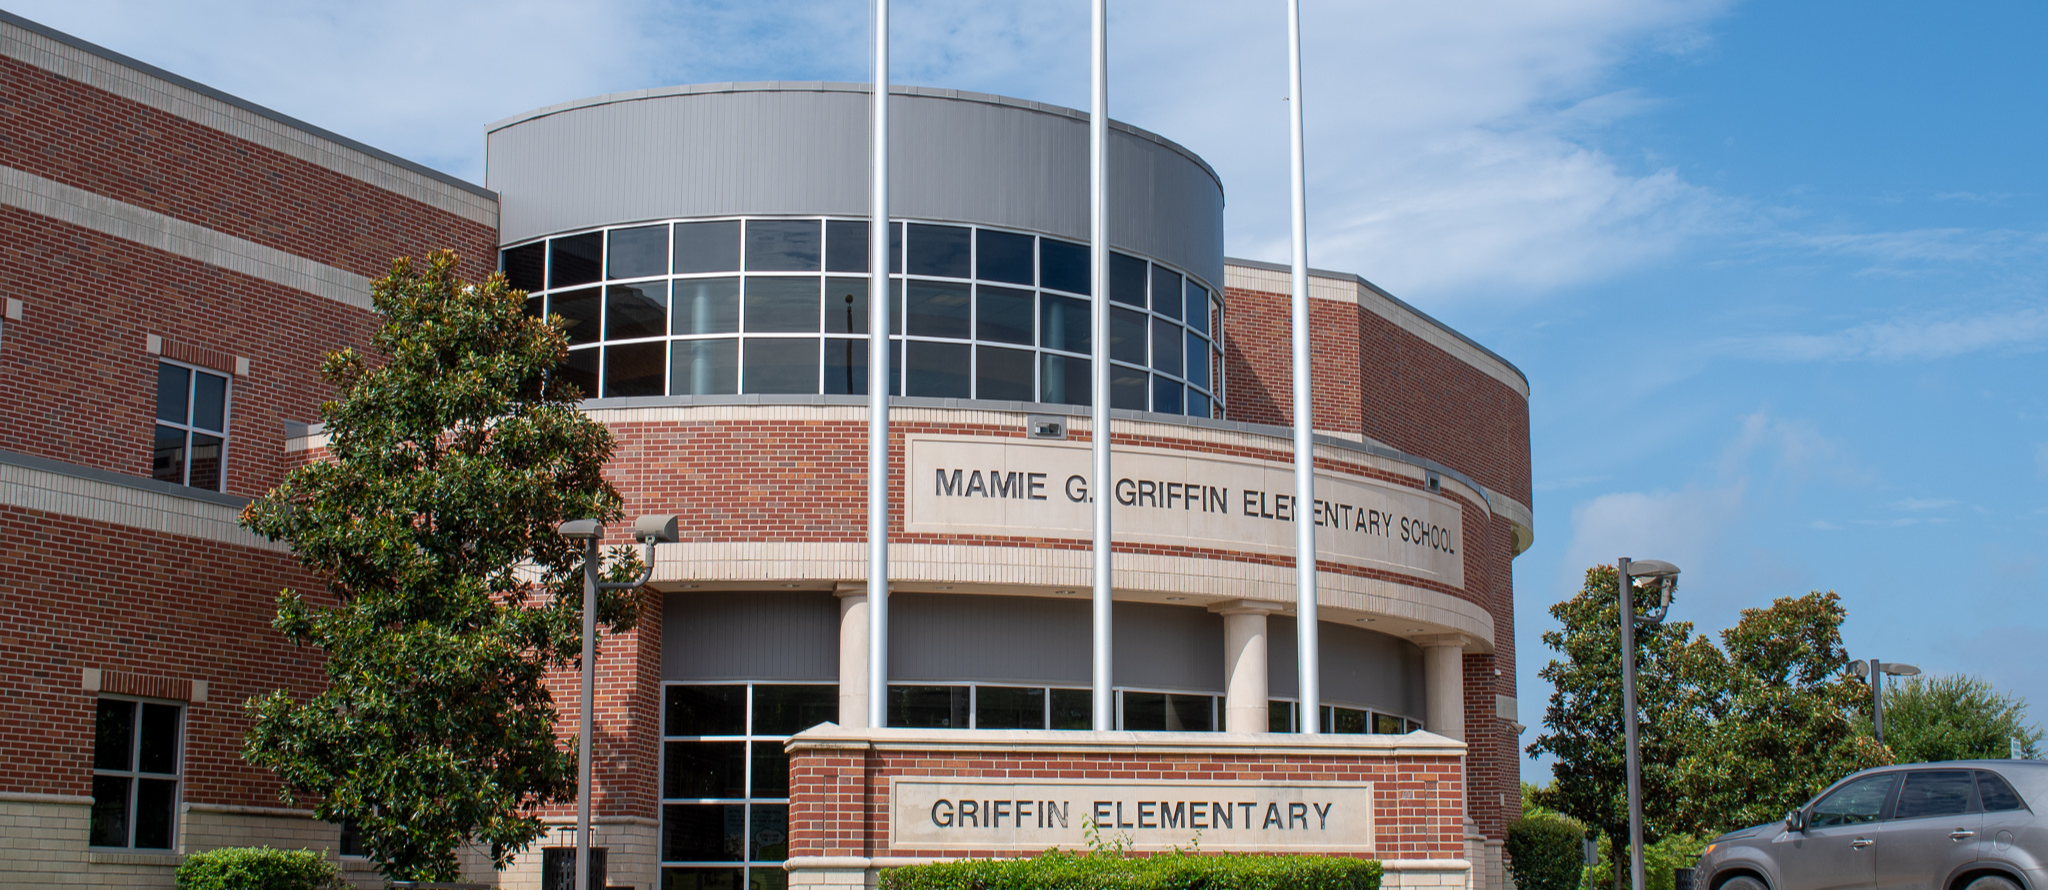 Griffin Elementary school front